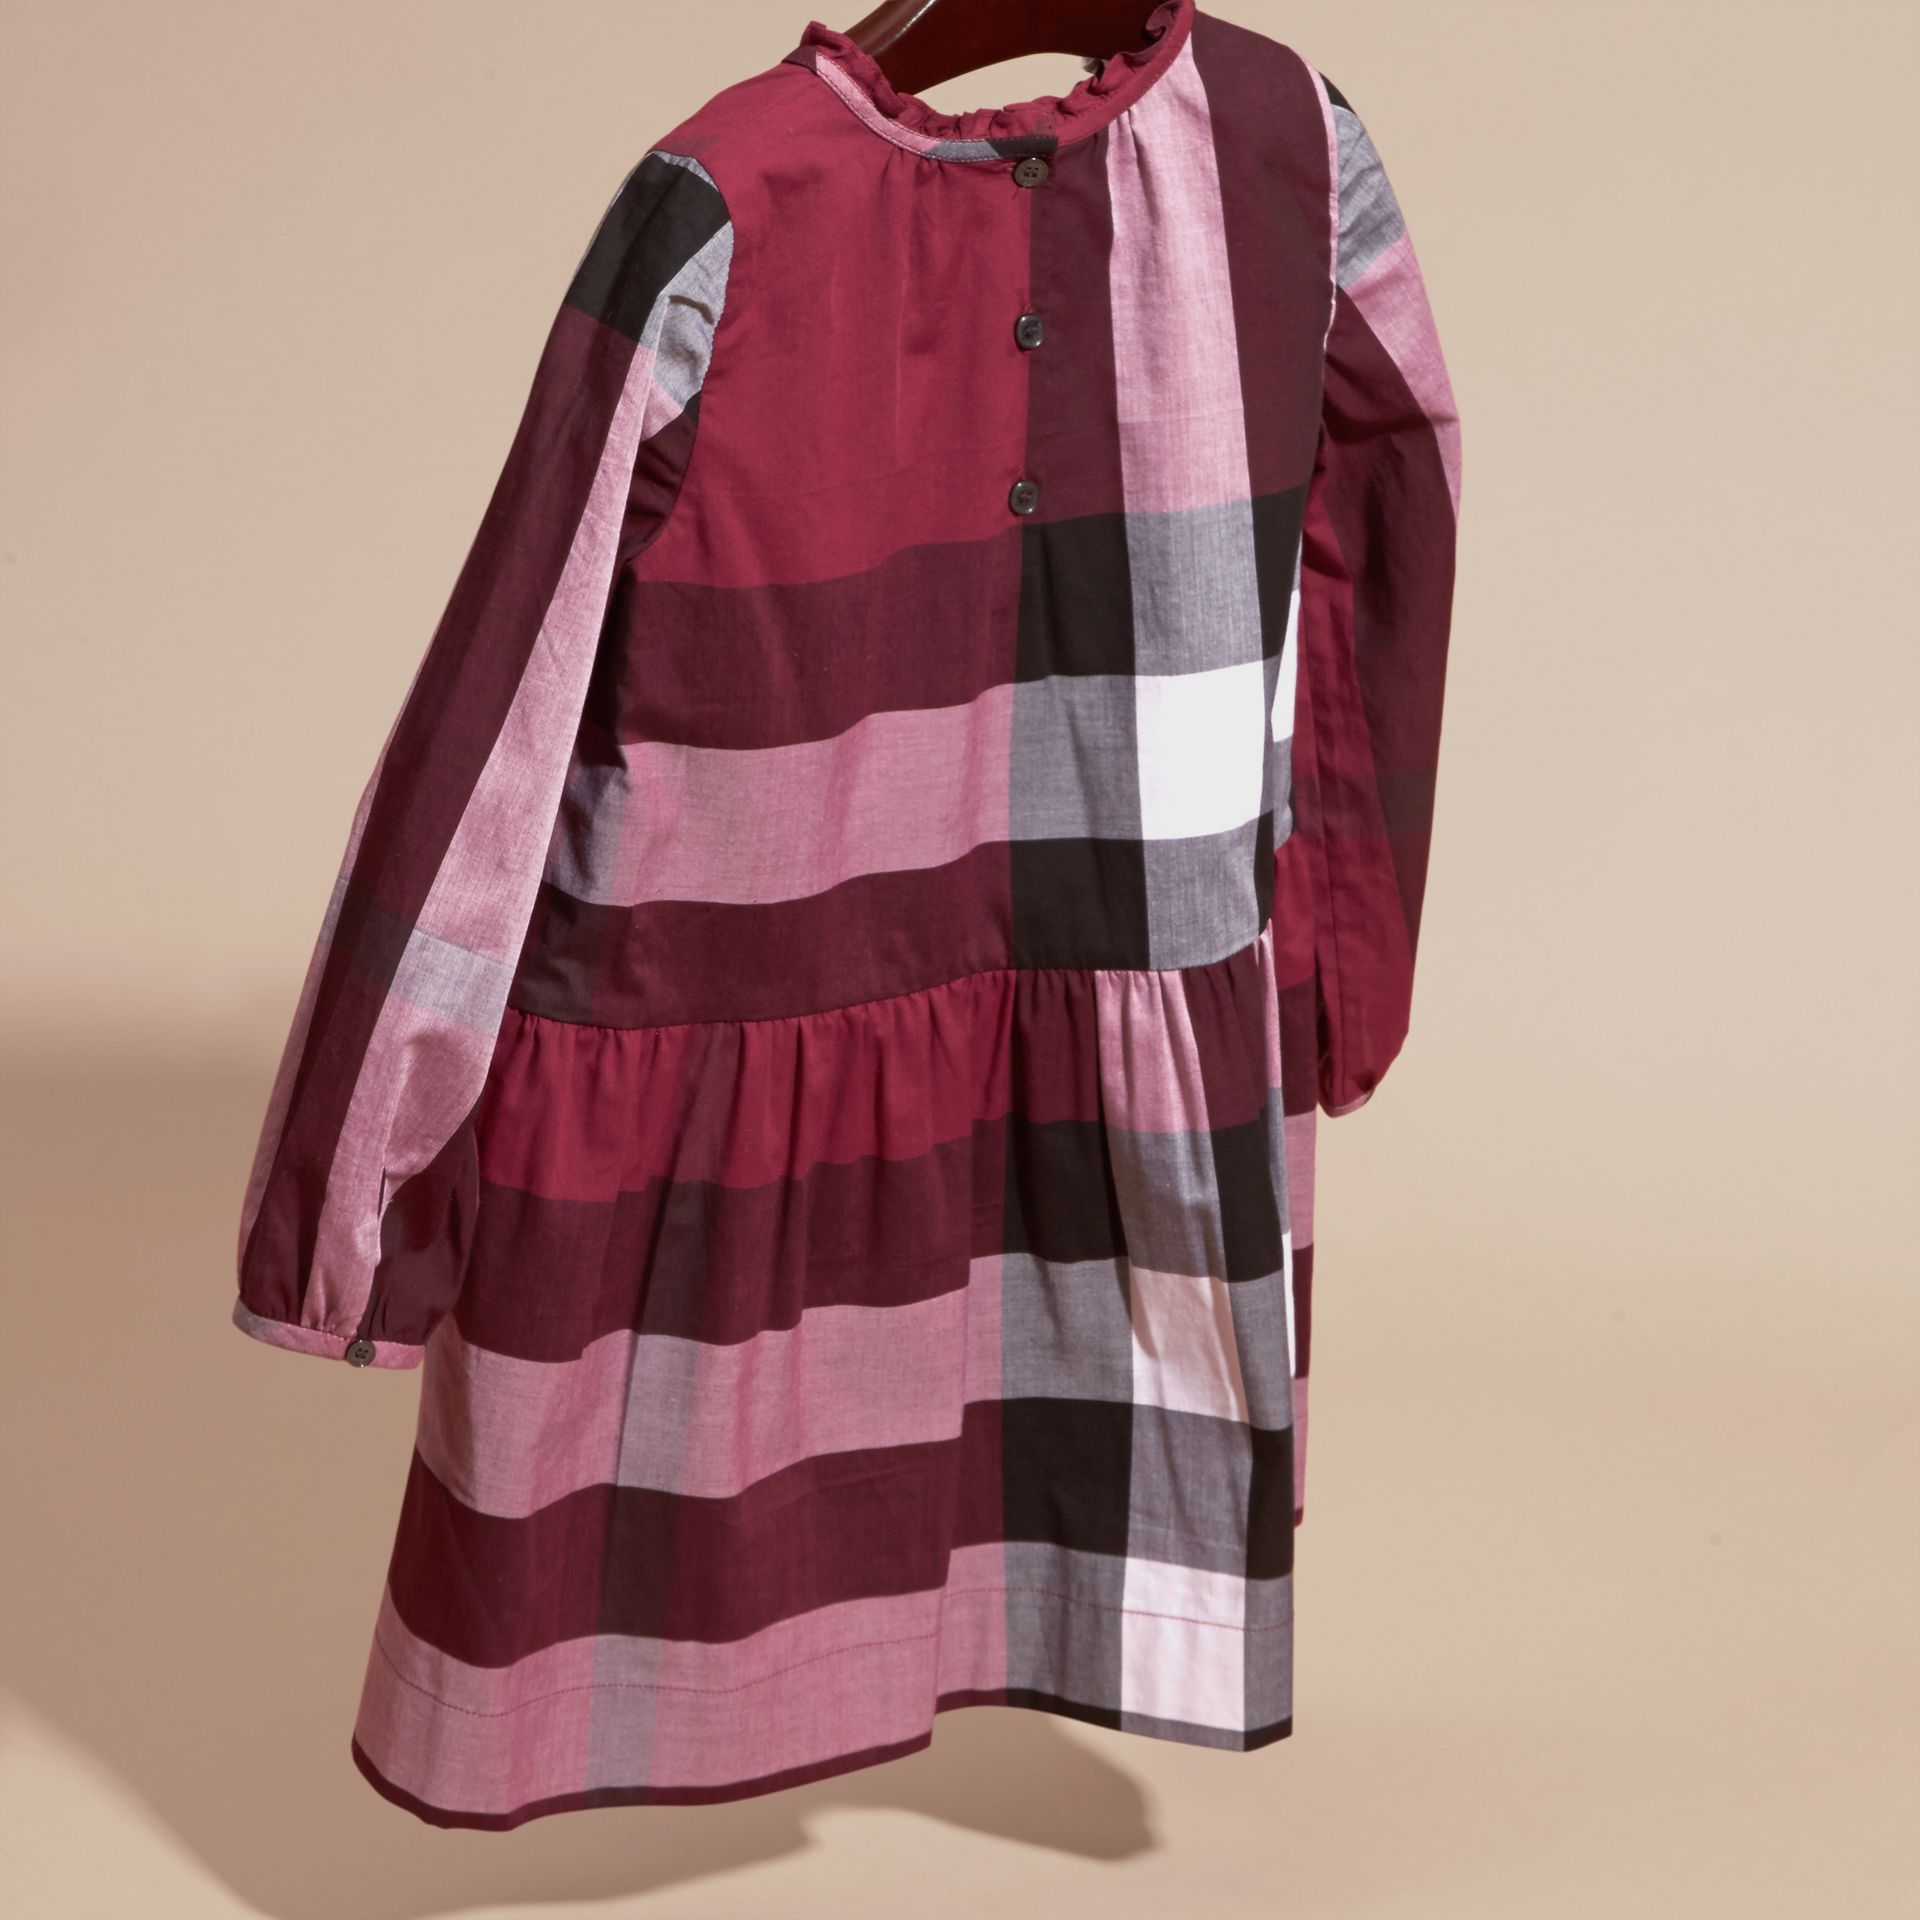 Dark plum pink Check Cotton Dress with Ruffle Detail Dark Plum Pink - gallery image 4